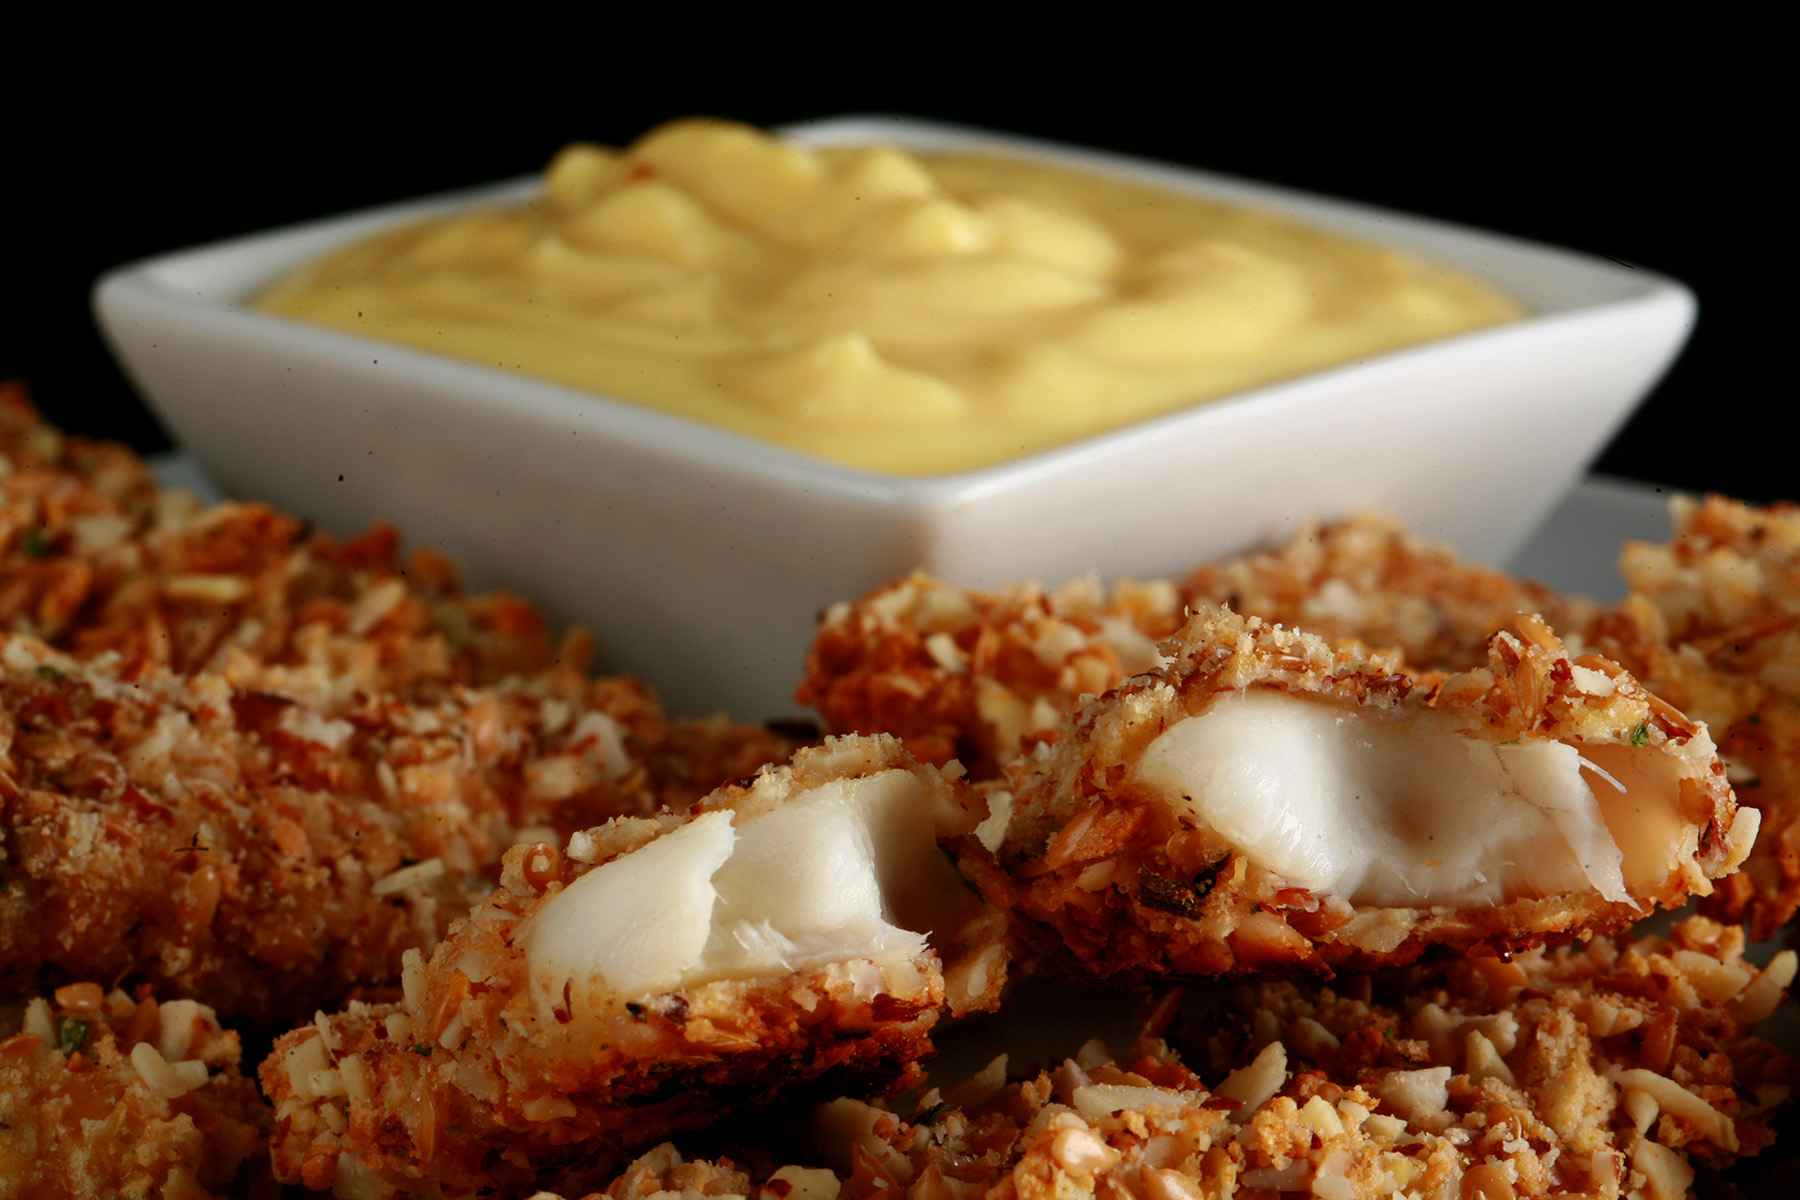 A plate of gluten-free fish fingers with a small bowl of savoury custard on the plate.